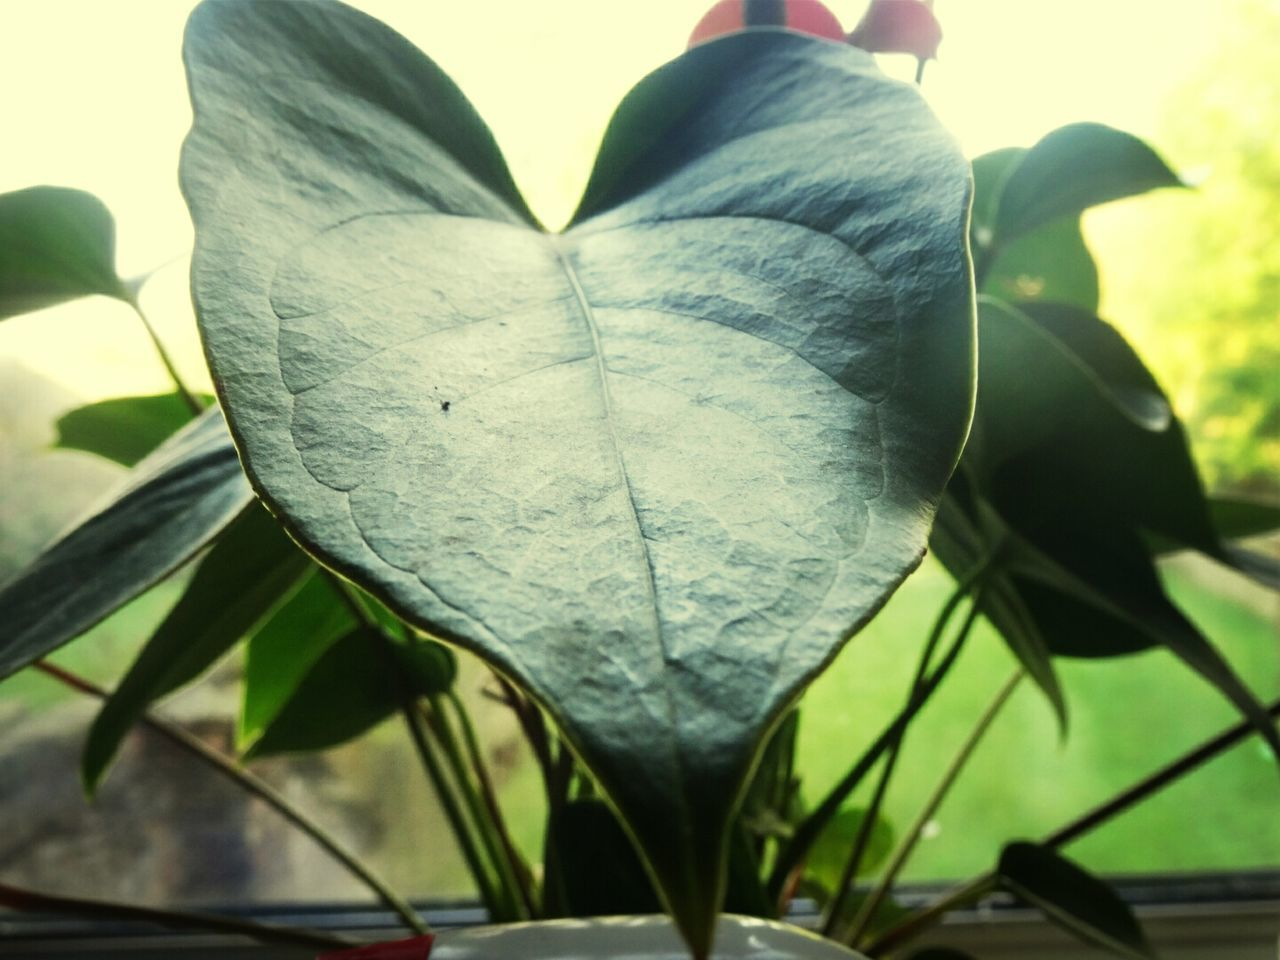 Low Angle View Of Potted Plant Leaf